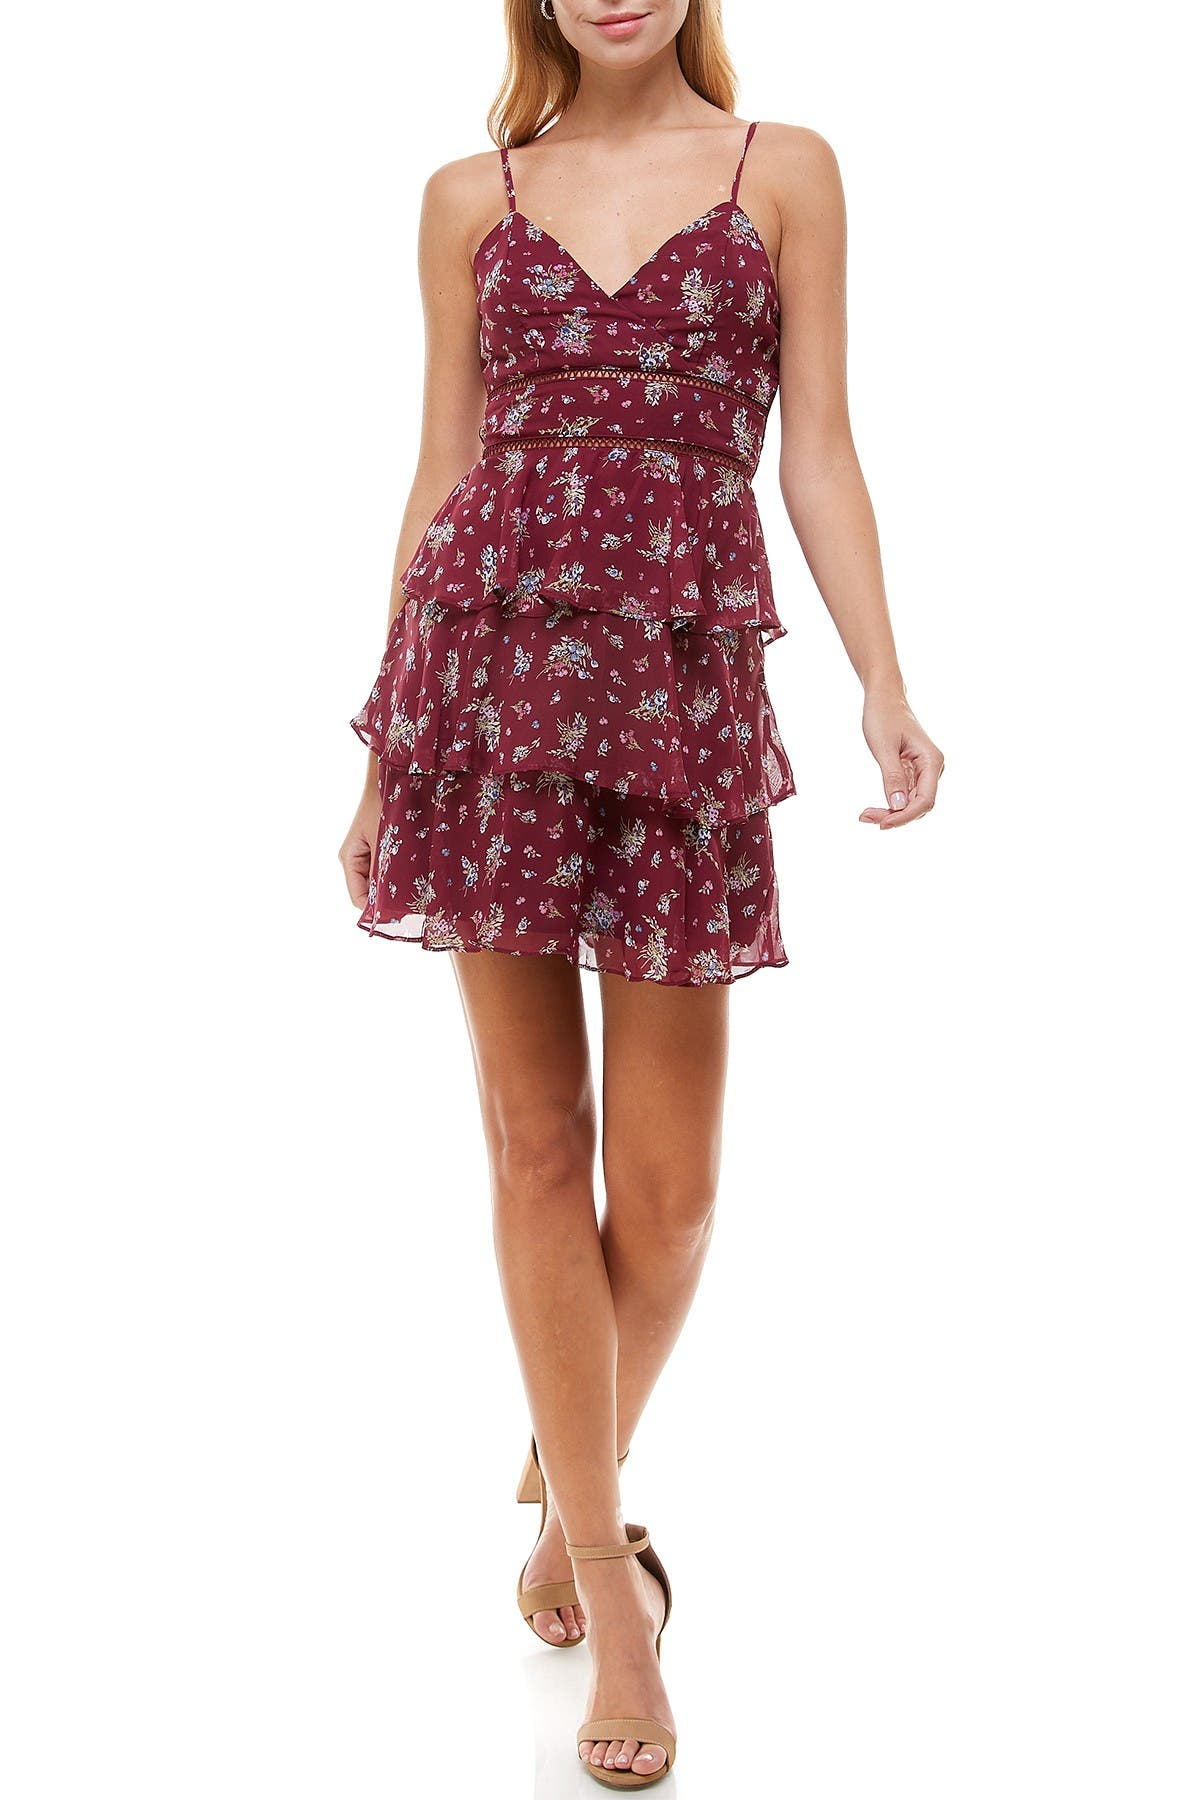 Image of ROW A Ladder Trim Tiered Dress